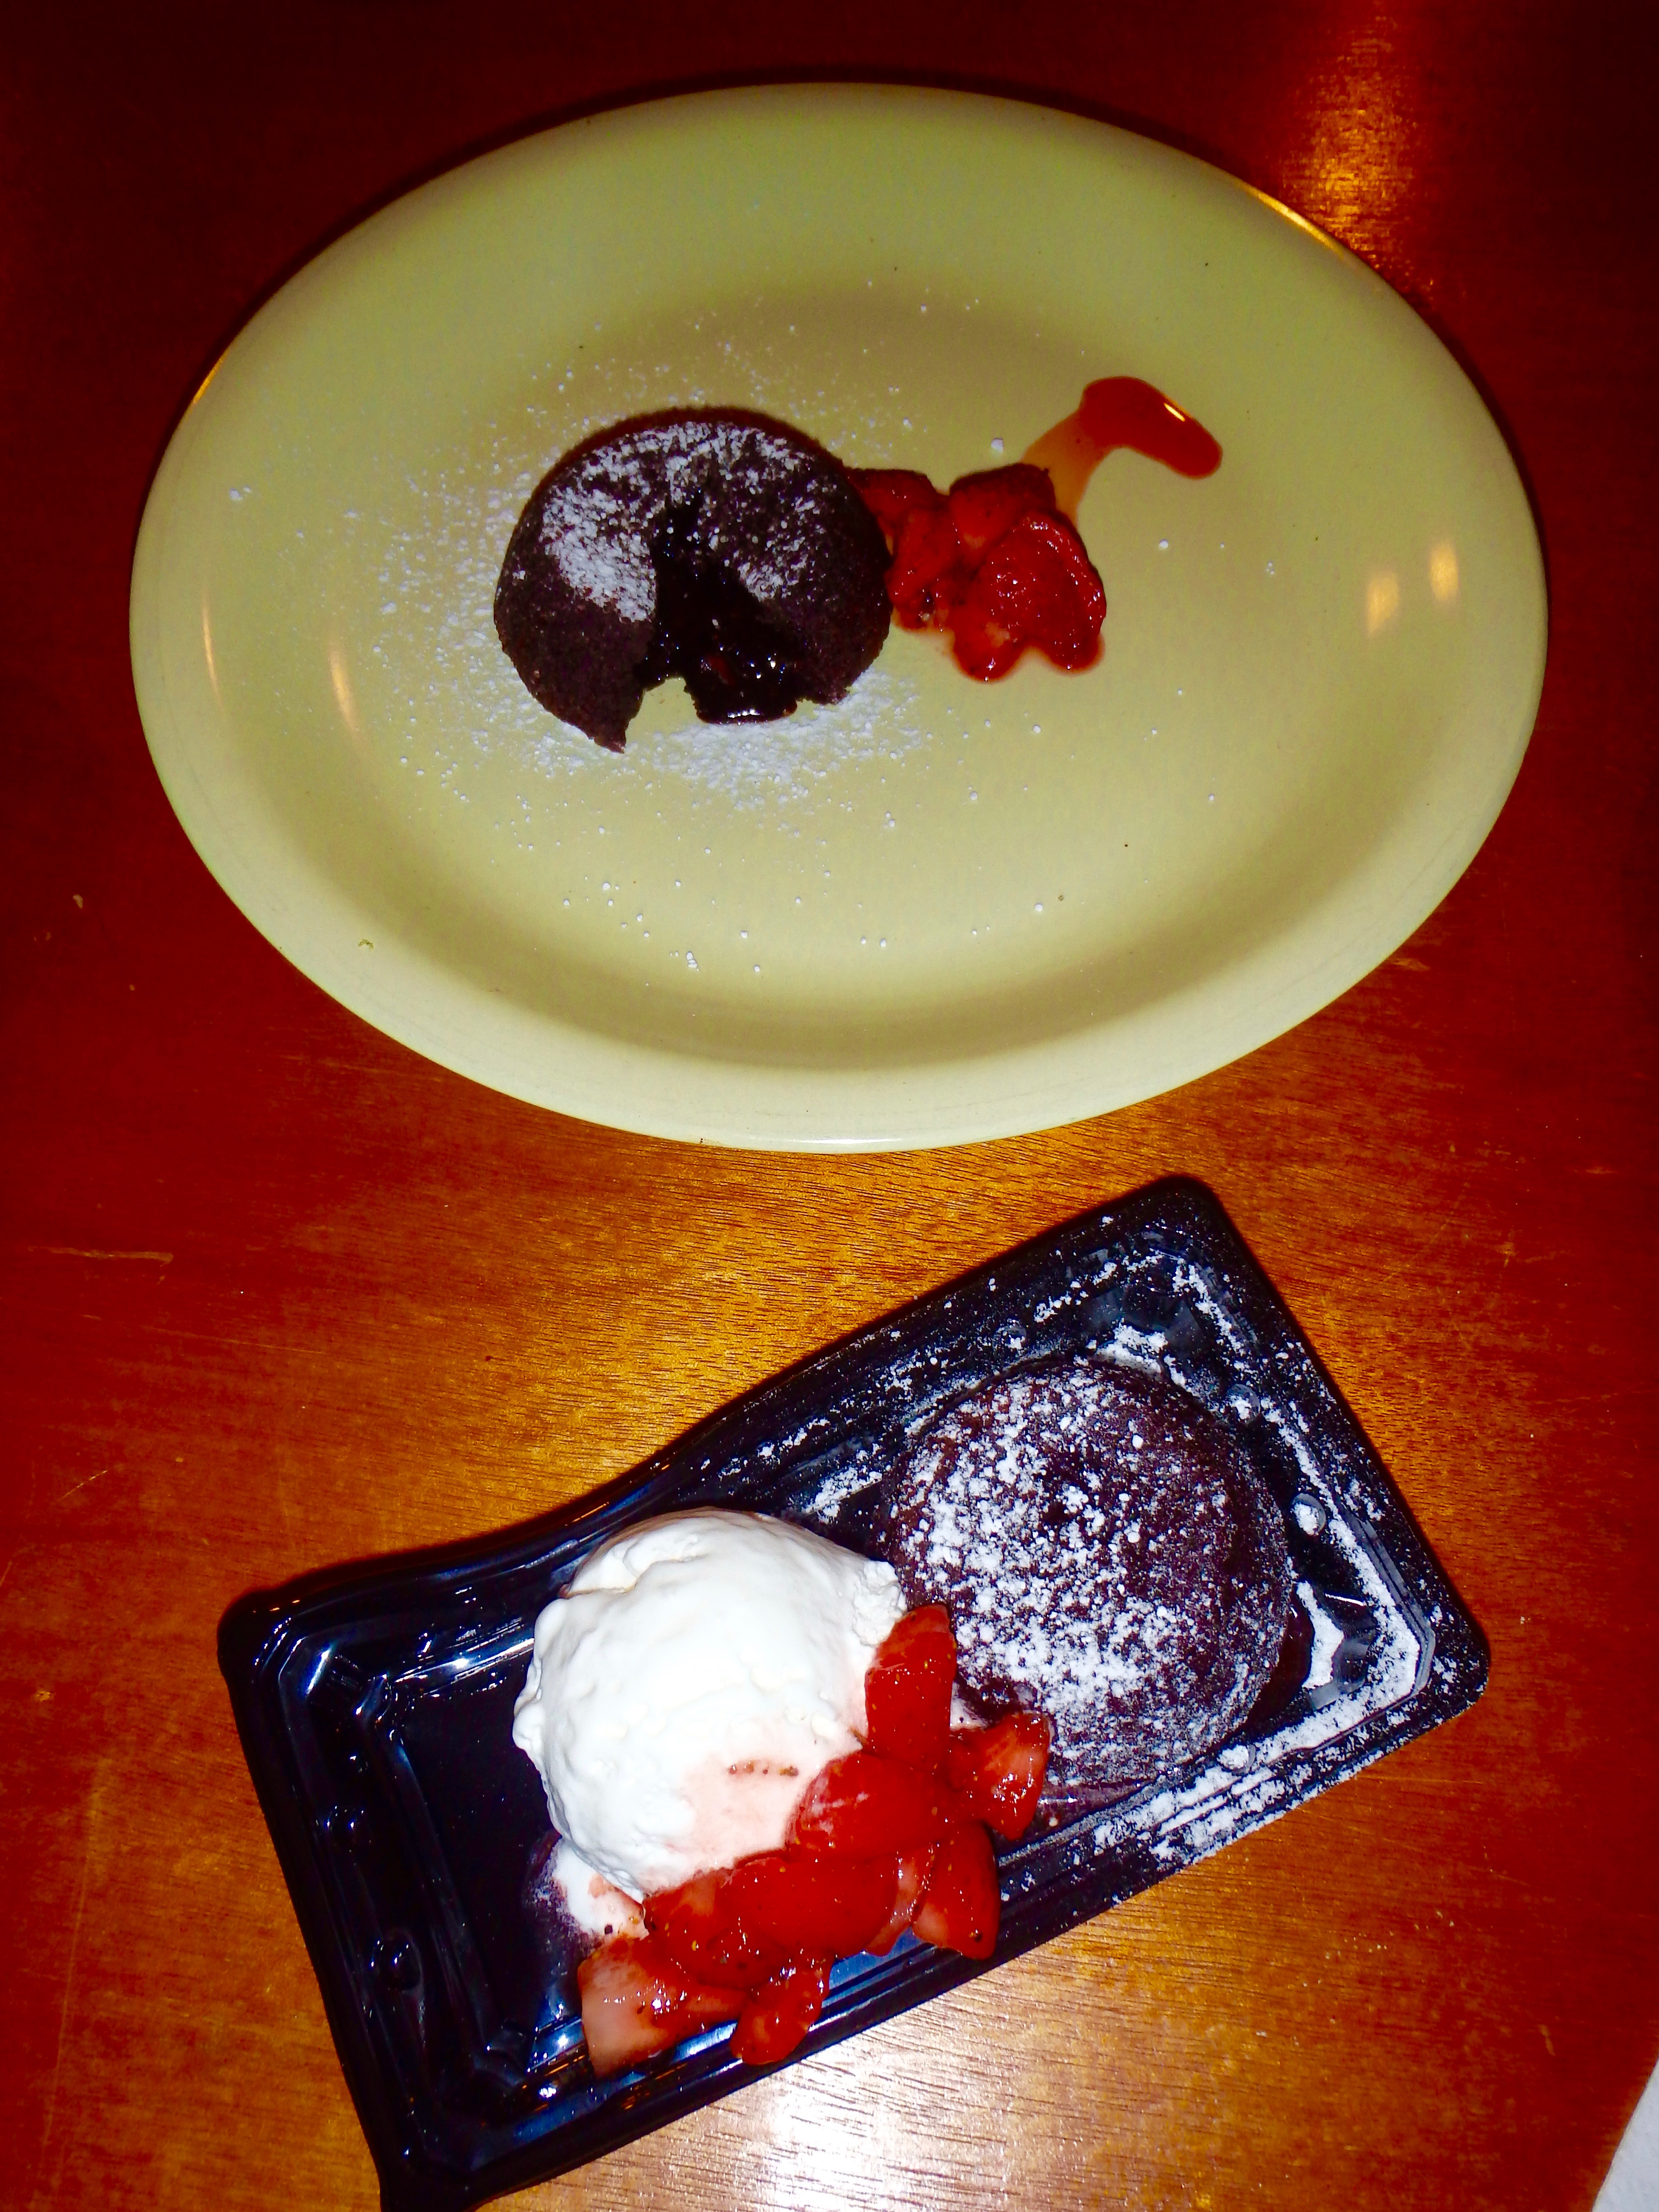 best dessert in curacao best places to eat in curacao where to eat in curacao places to go for dessert in willemstad